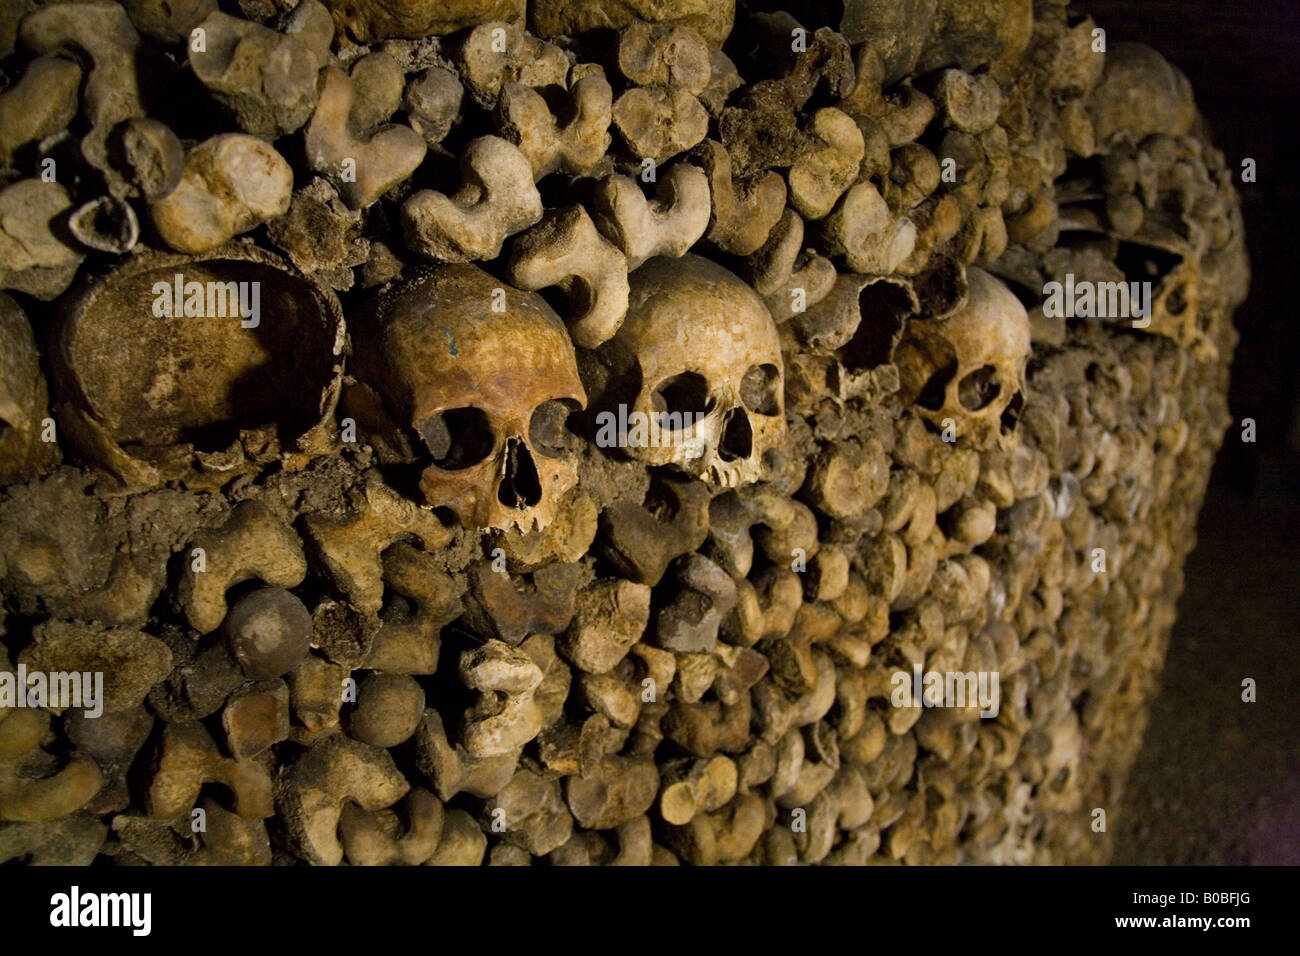 Human Skulls And Bones Stacked In Rows In The Underground Catacombs ...